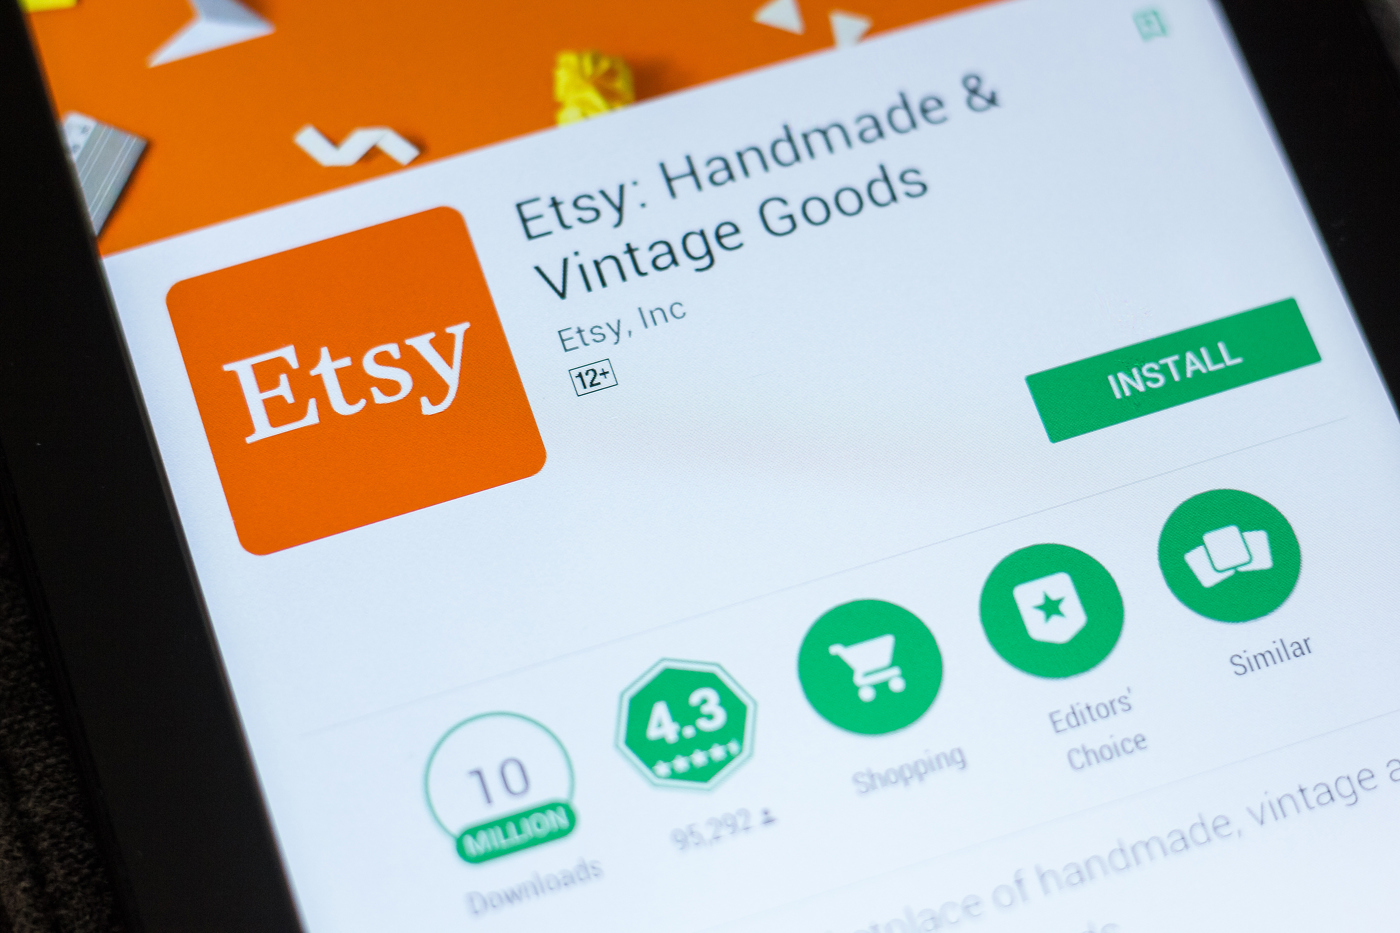 ETSY stock news and analysis